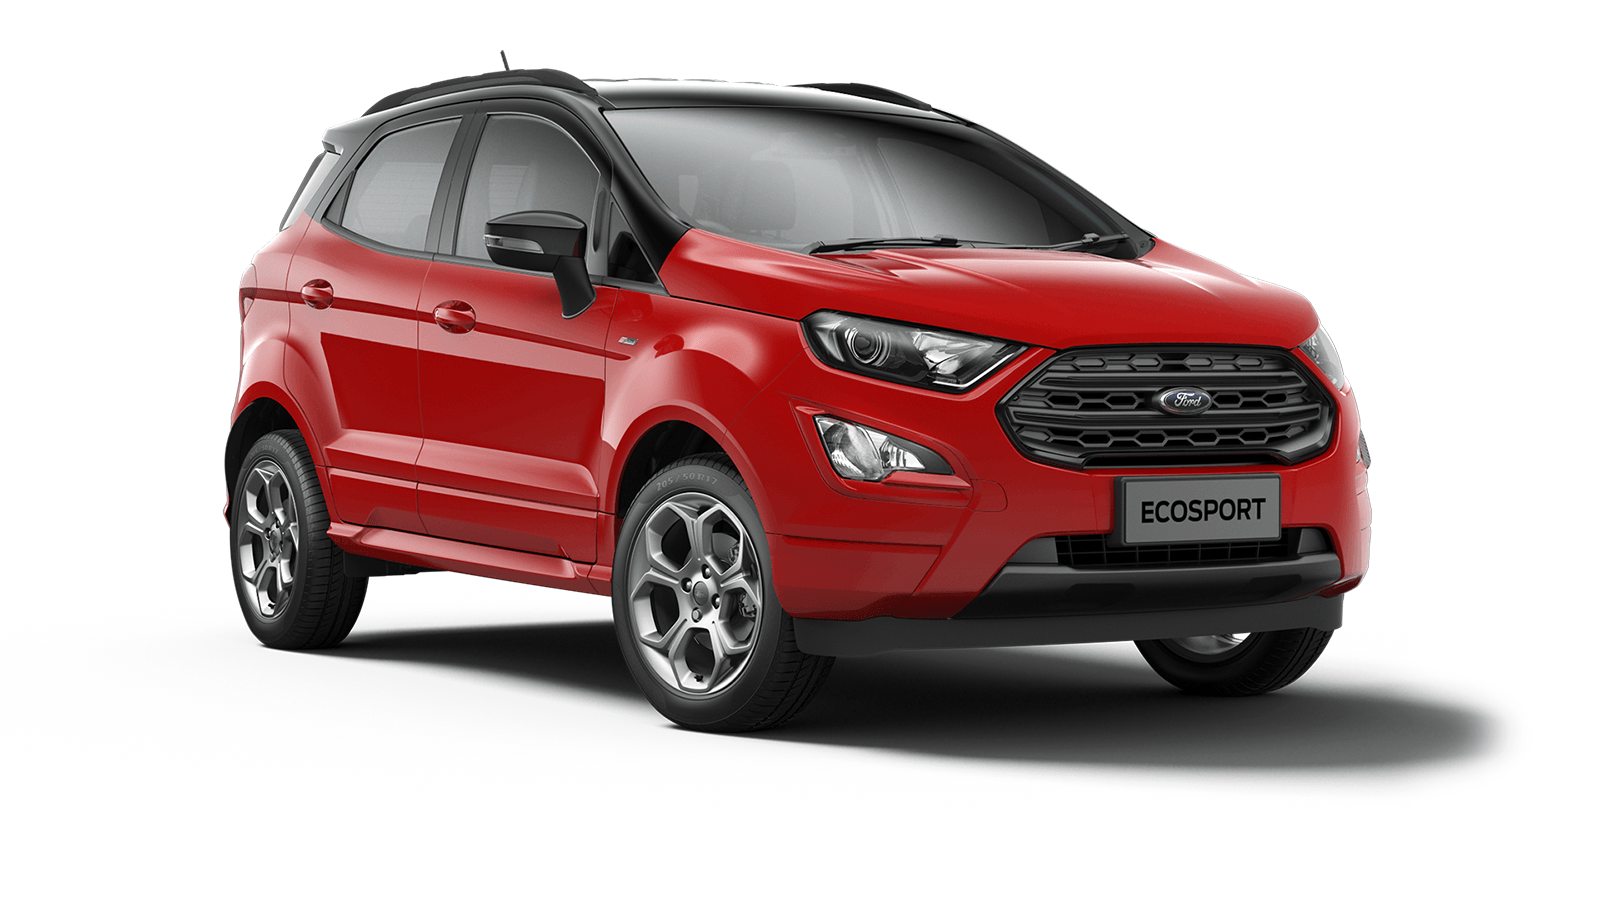 Ford EcoSport at Balmoral Garage